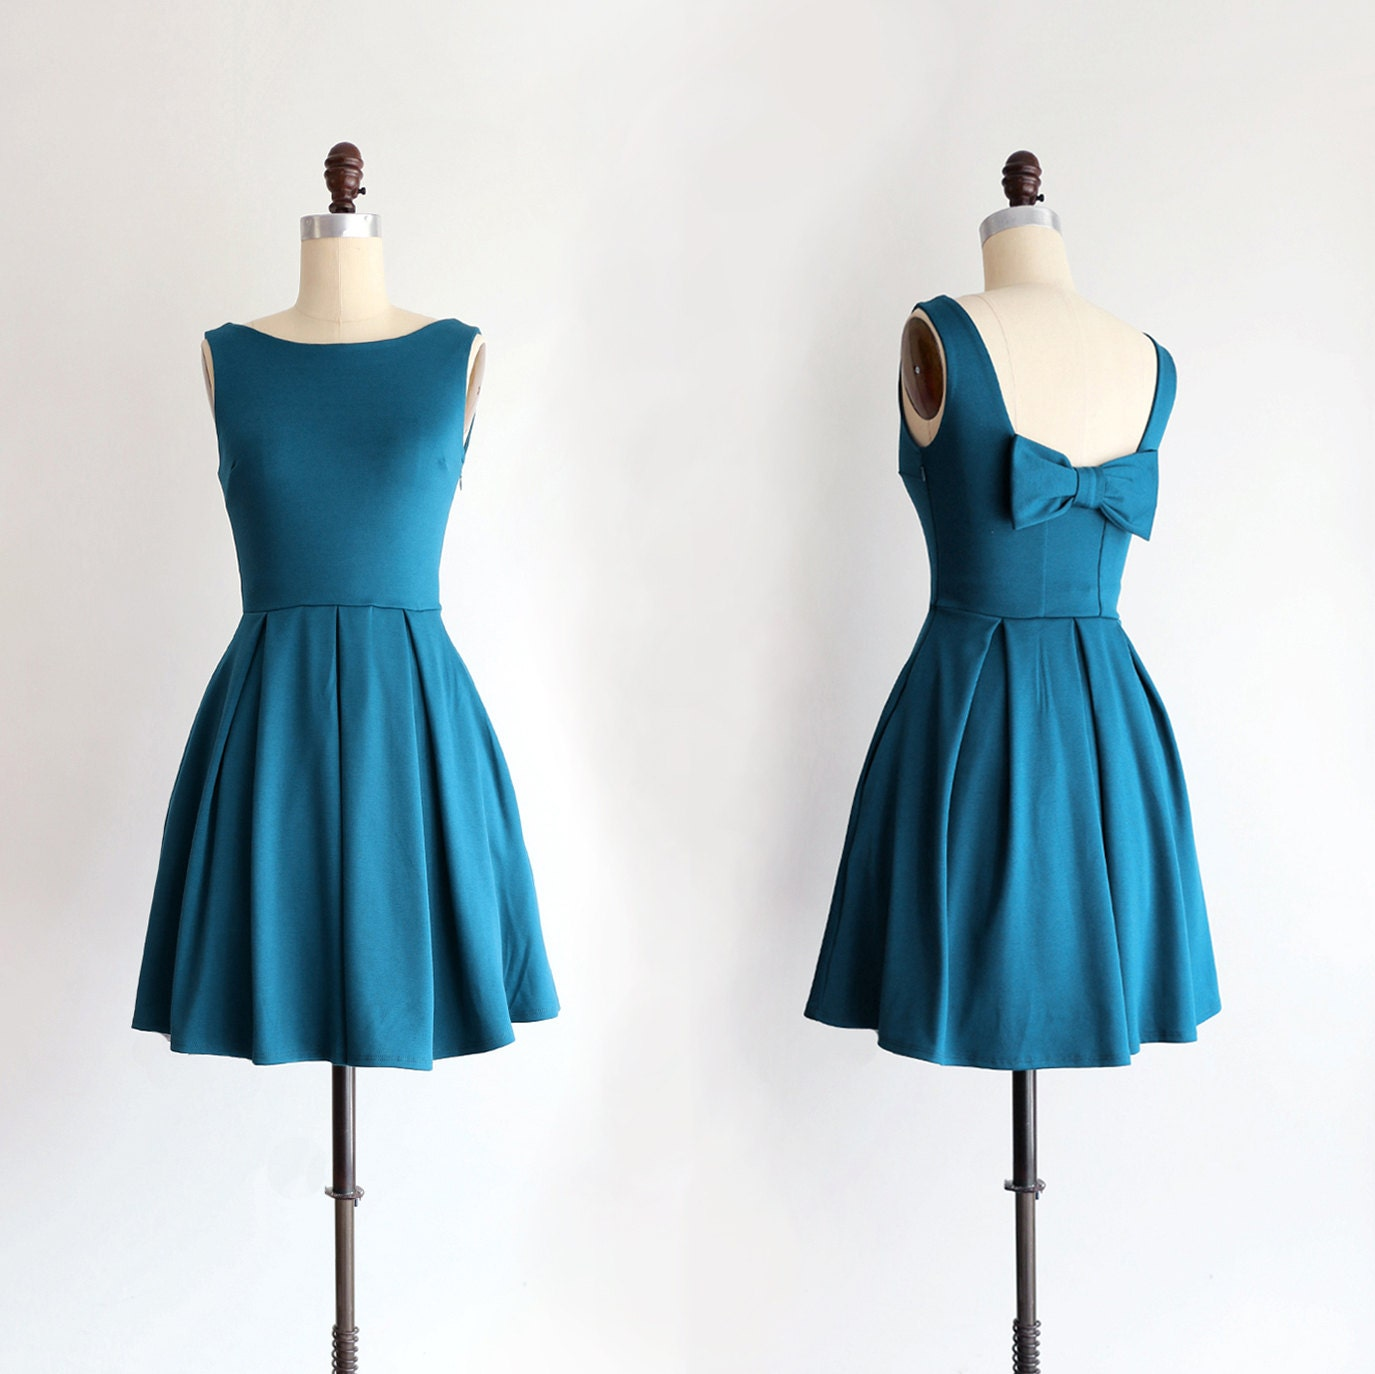 teal bridesmaid dresses for sale